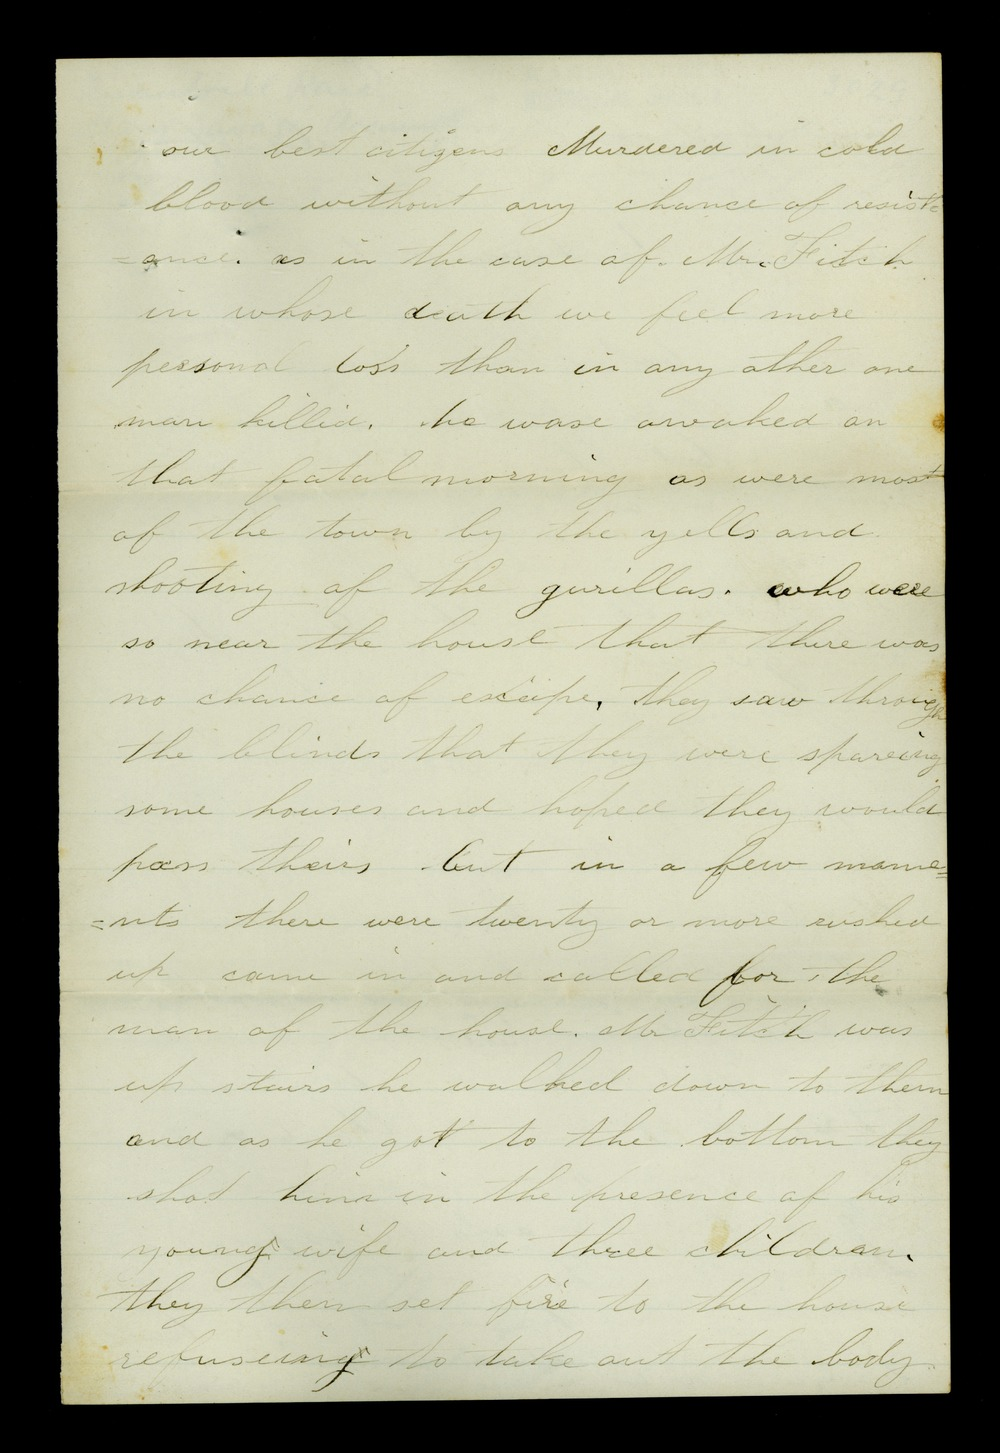 Mary Savage correspondence - 3